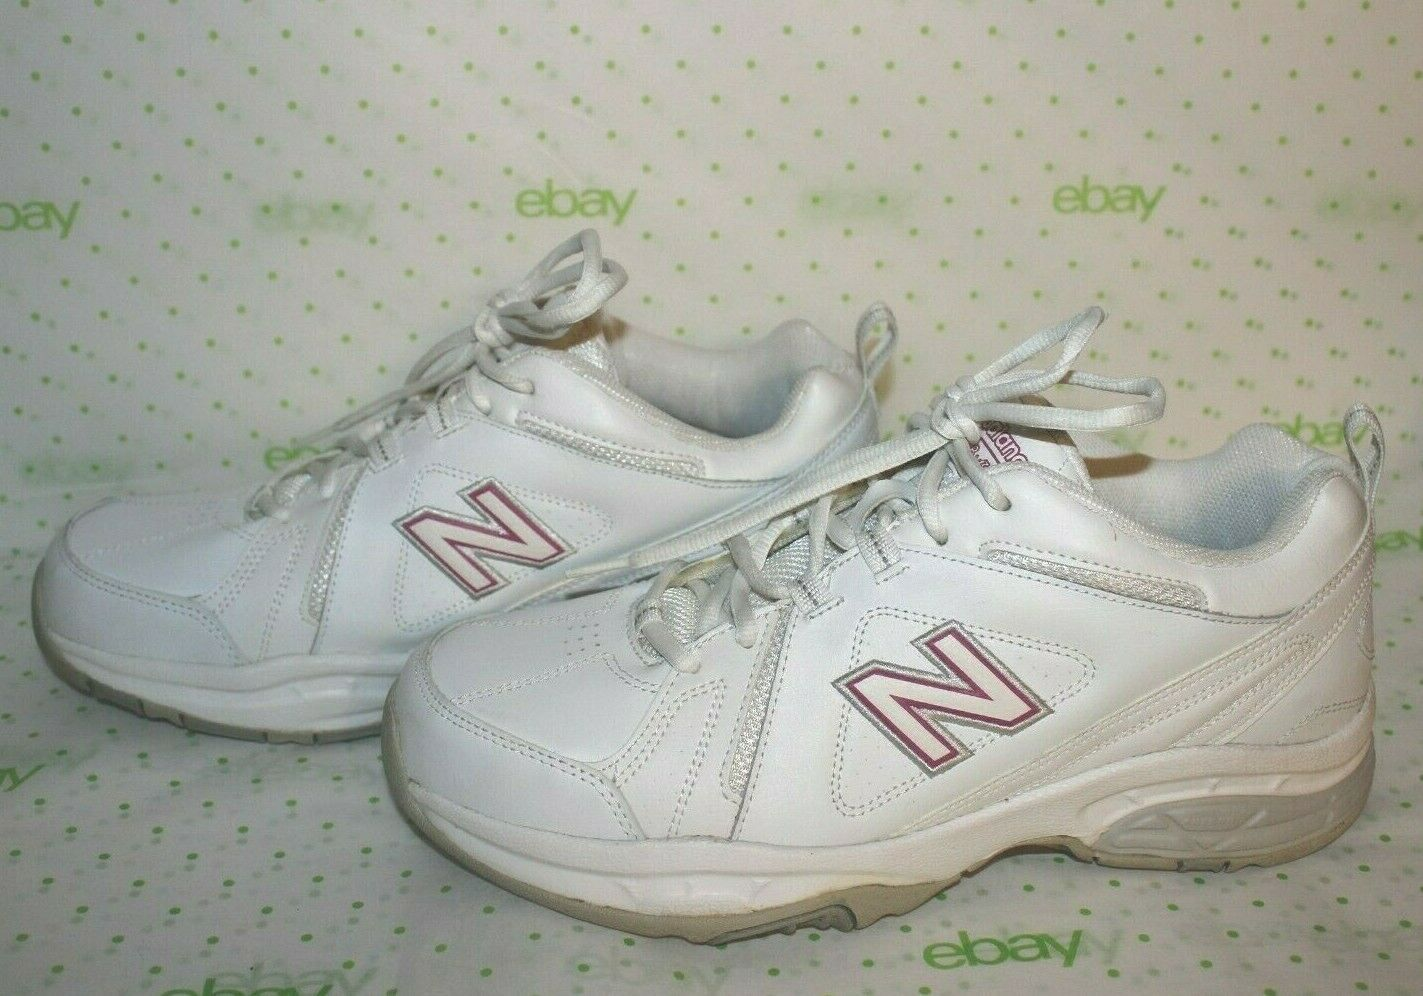 ✿ NEW BALANCE 608 Cross-Traning White Pink Shoes Sneakers 11 Wide GREAT! L@@K!15